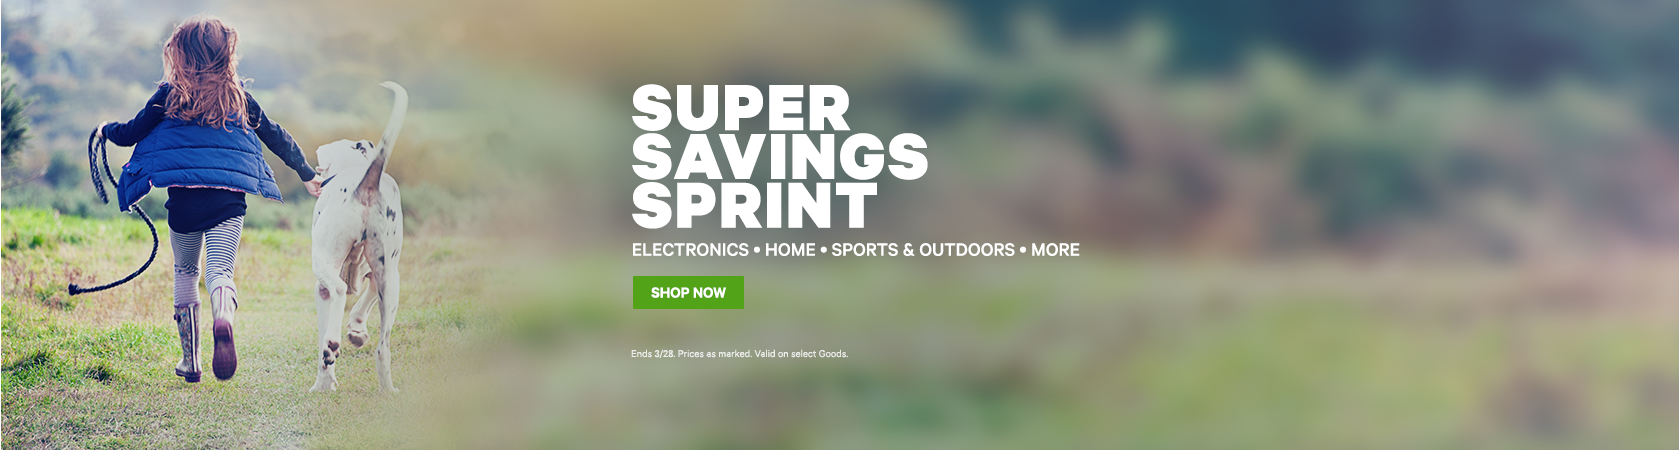 Super Savings Sprint